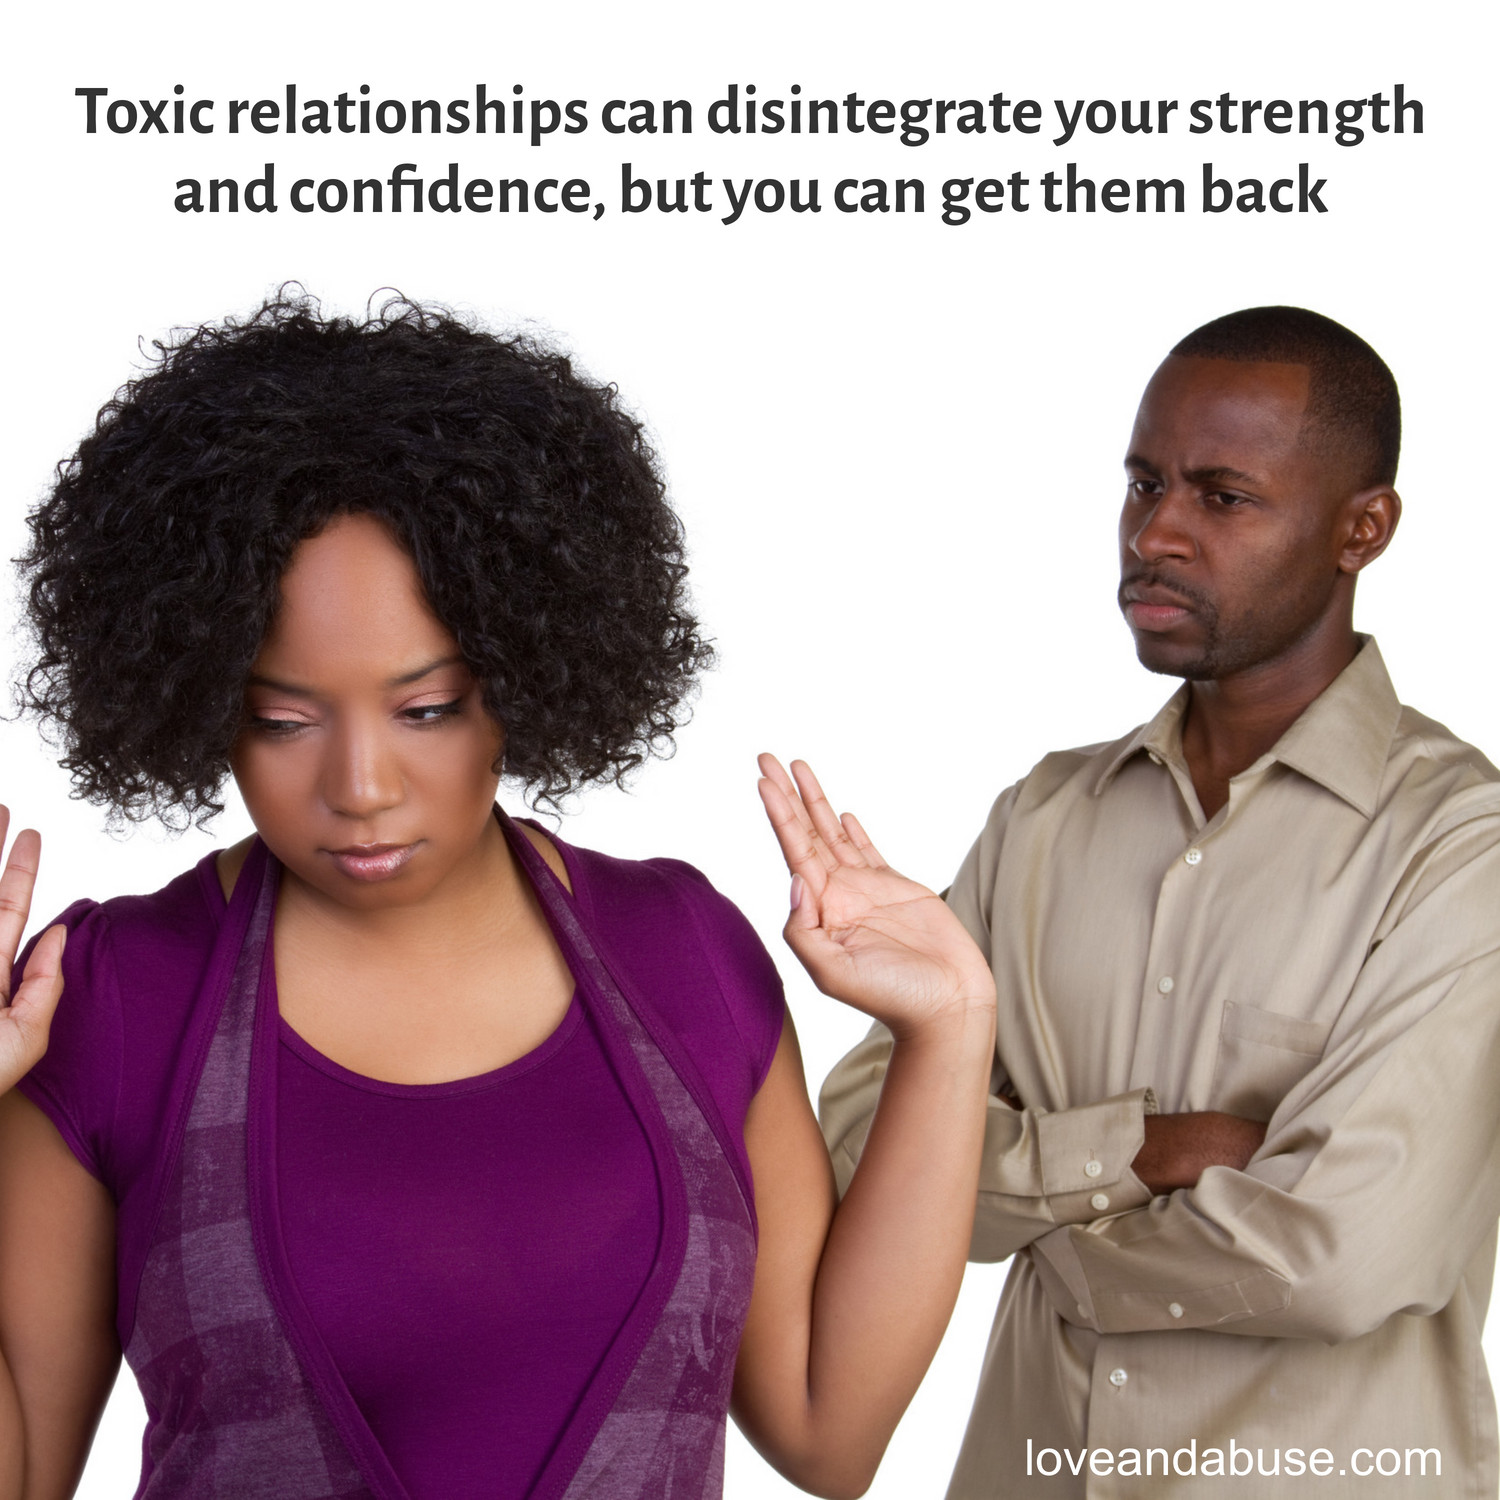 Toxic relationships can disintegrate your strength and confidence, but you can get it back